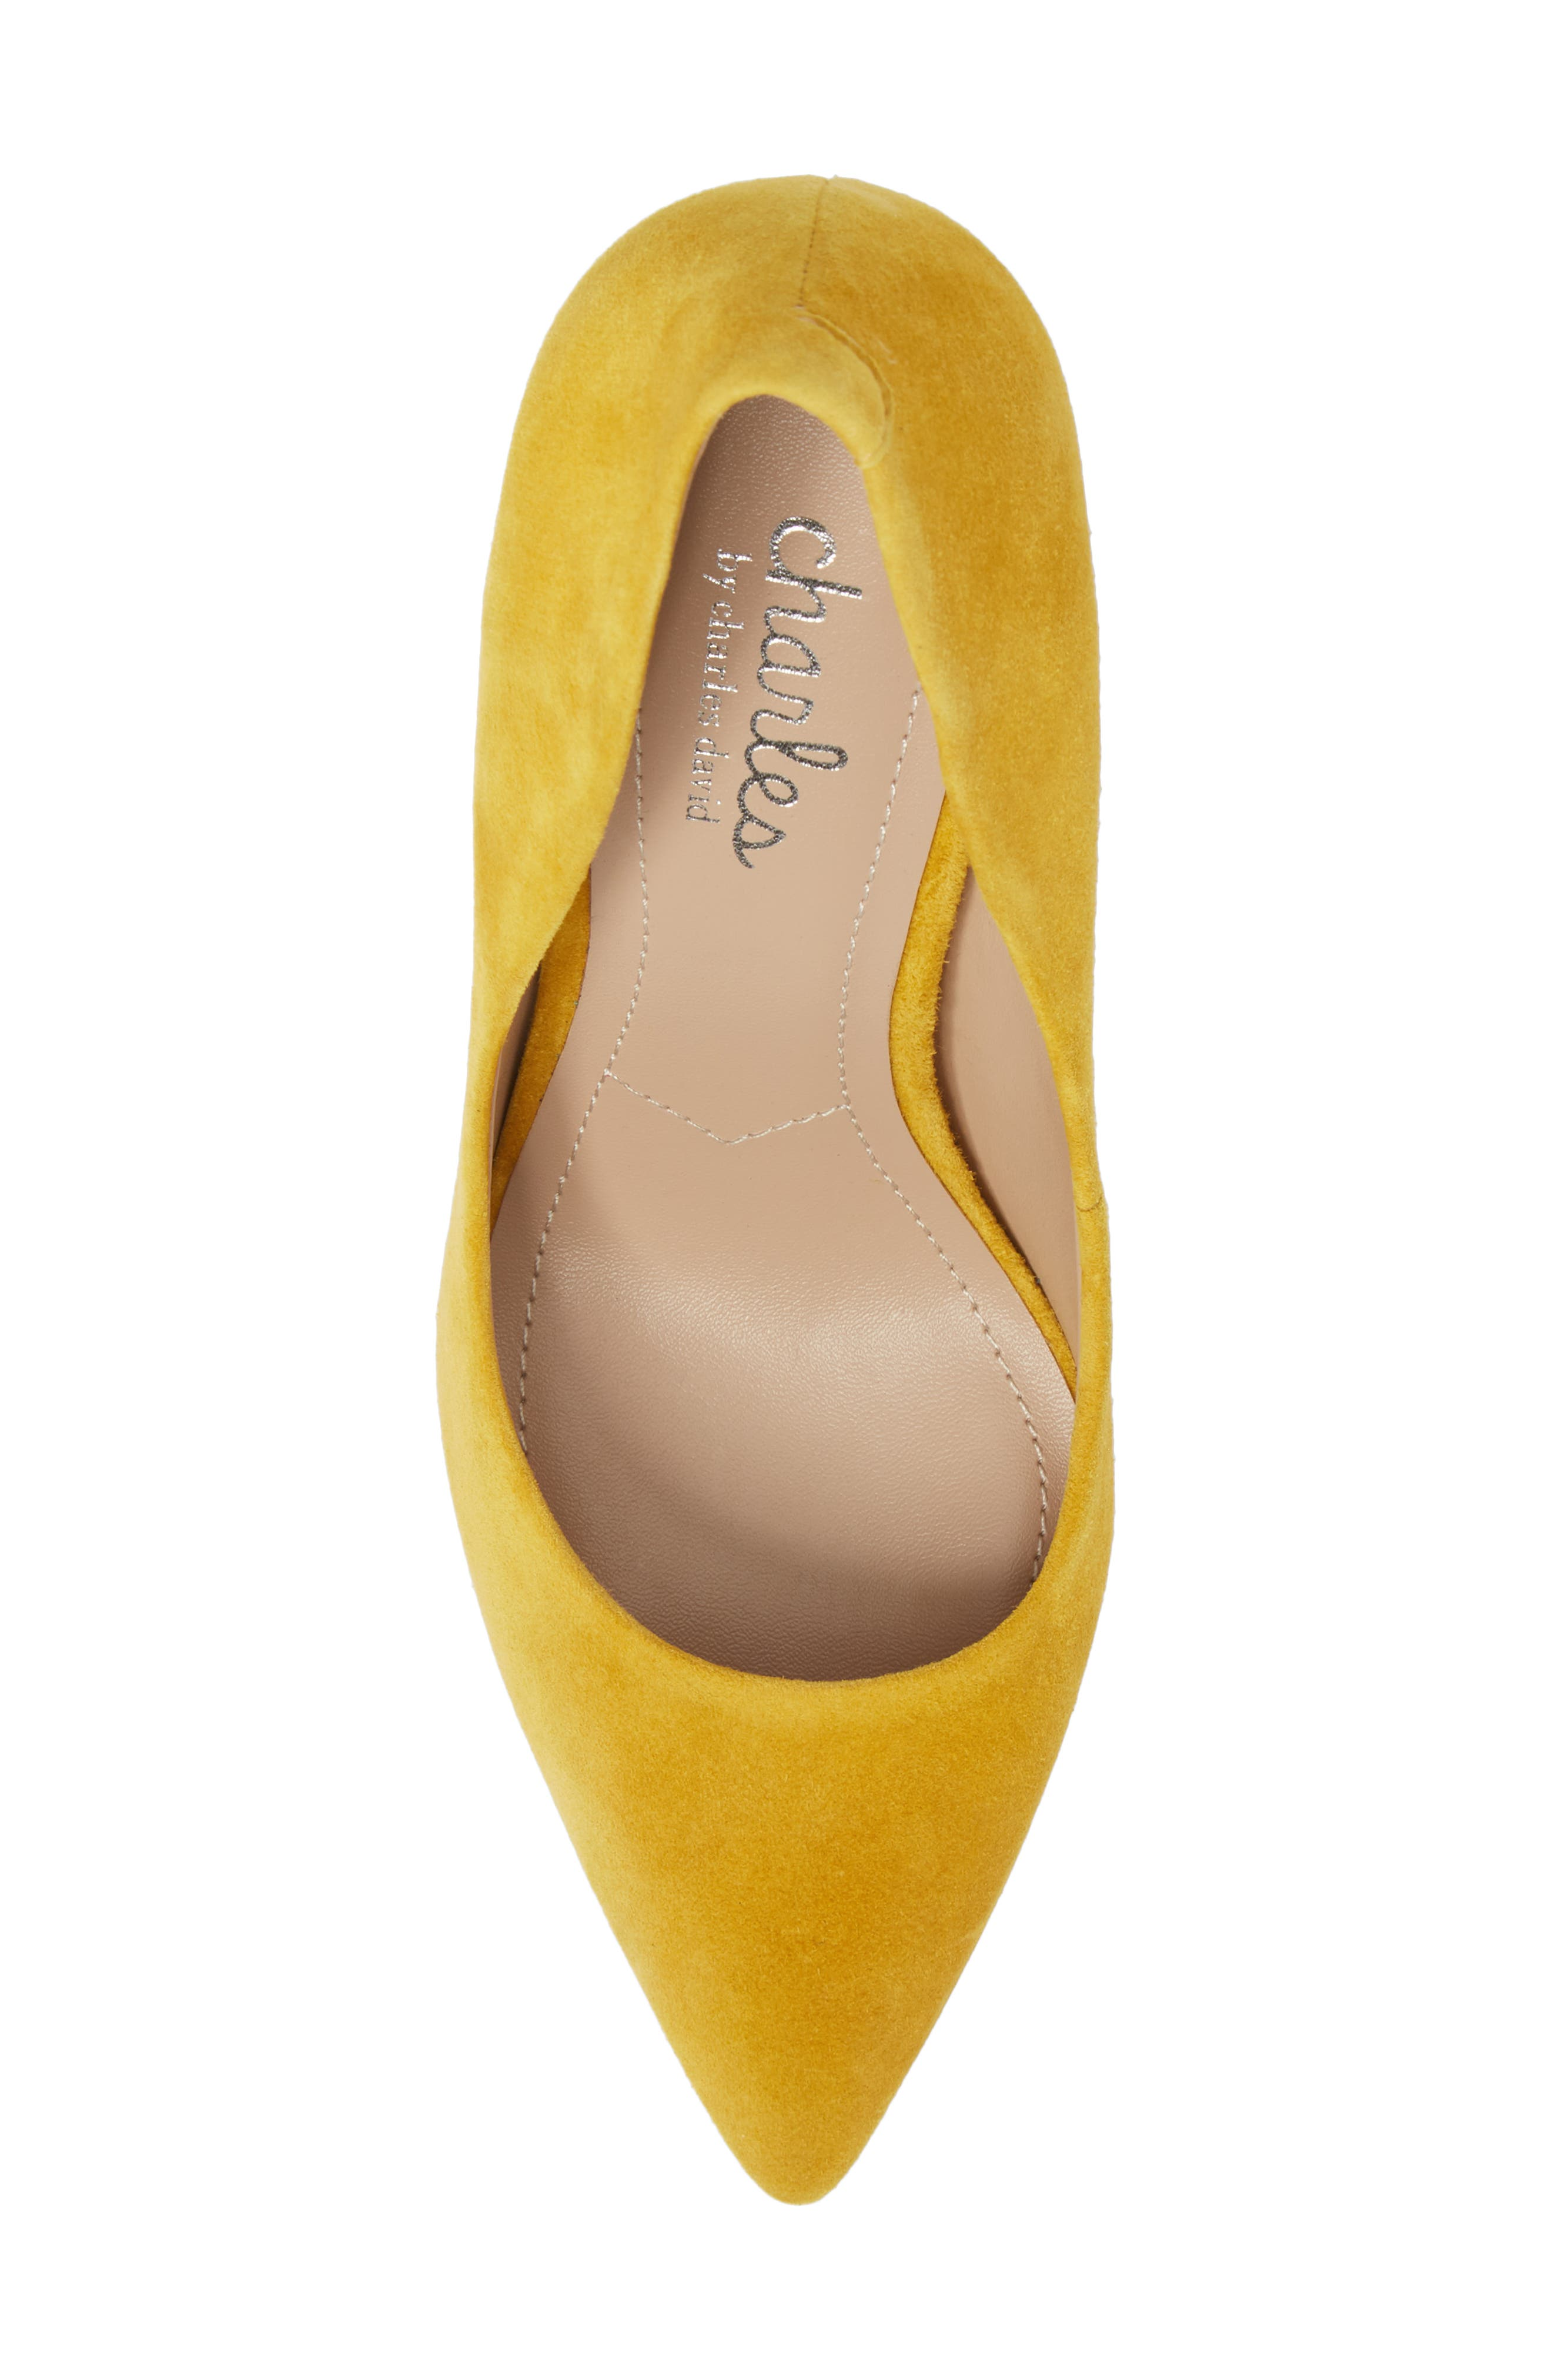 Maxx Pointy Toe Pump,                             Alternate thumbnail 5, color,                             Canary Suede